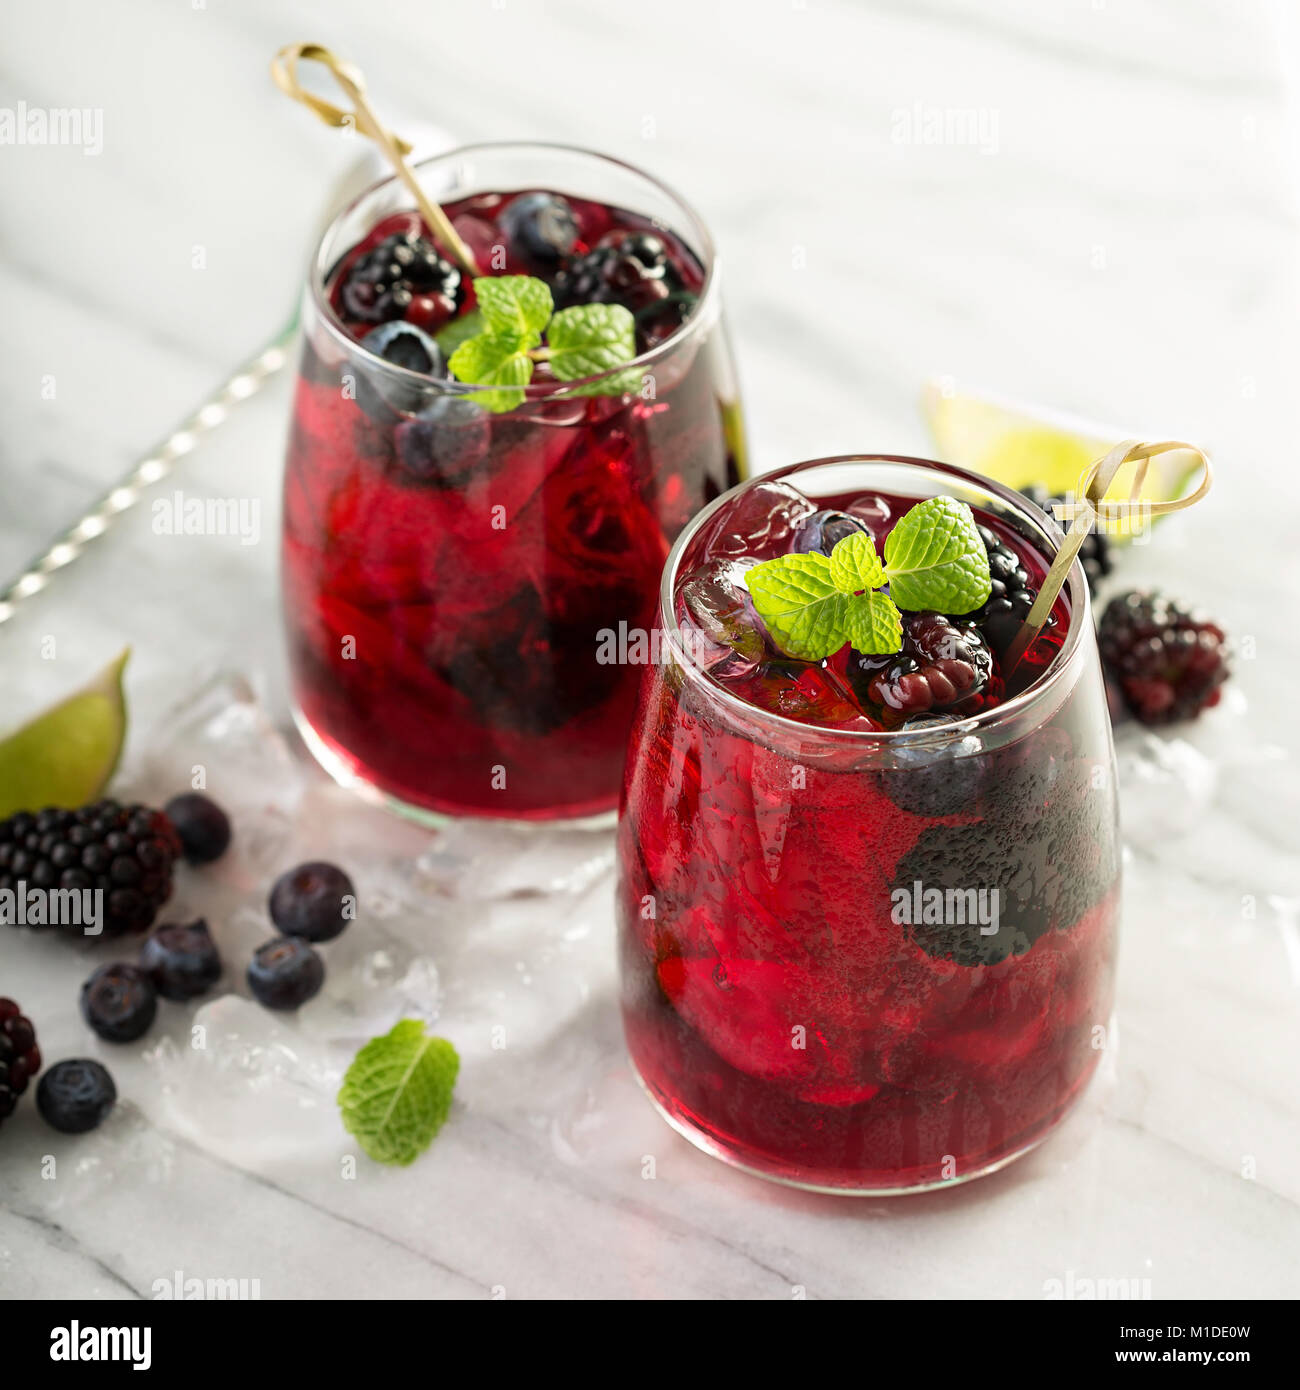 Estate berry drink con calce Immagini Stock